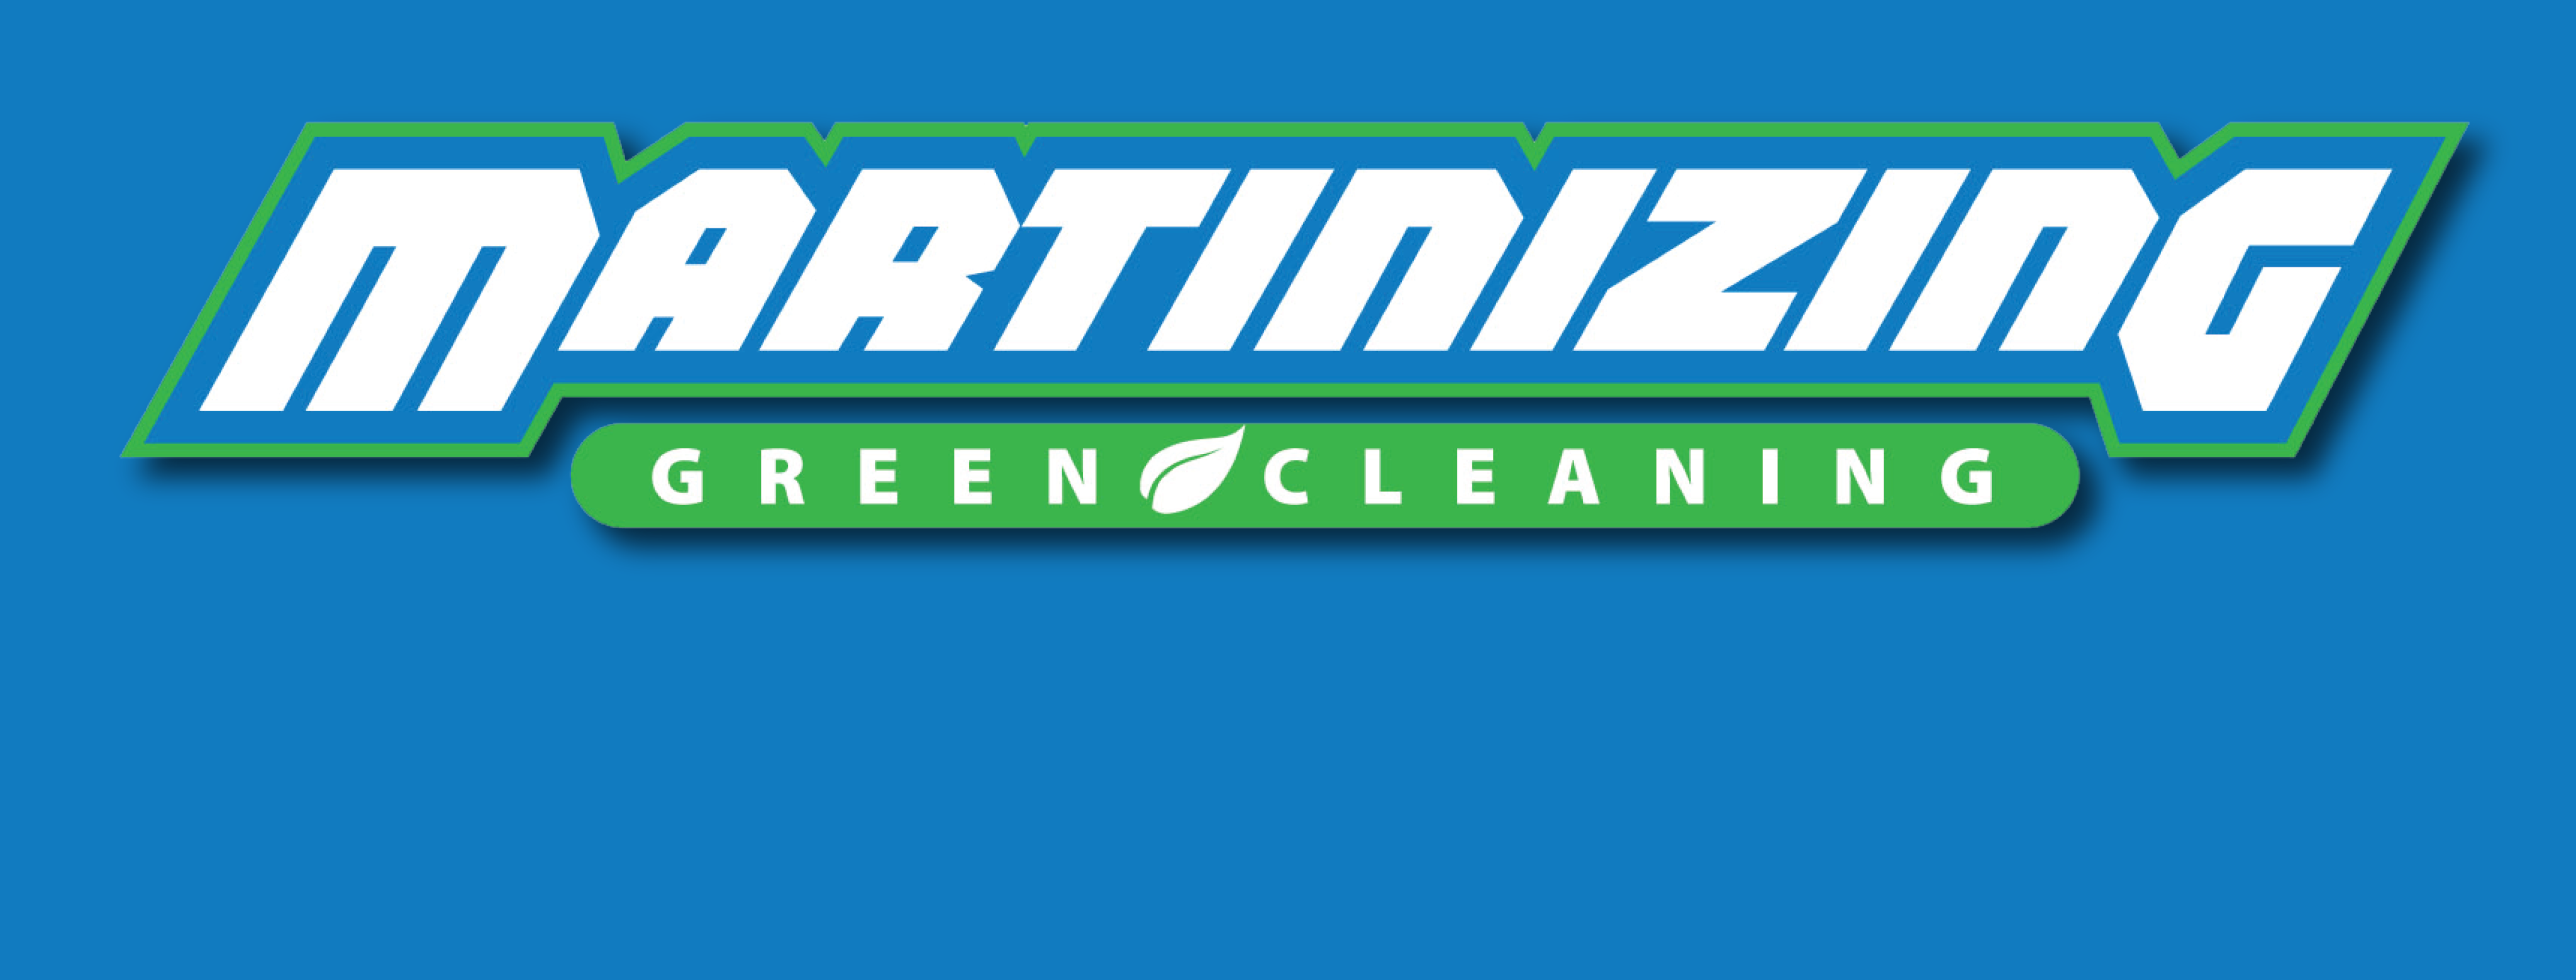 Martinizing reviews | Dry Cleaning at 1320 Pabst Farms Circle - Oconomowoc WI